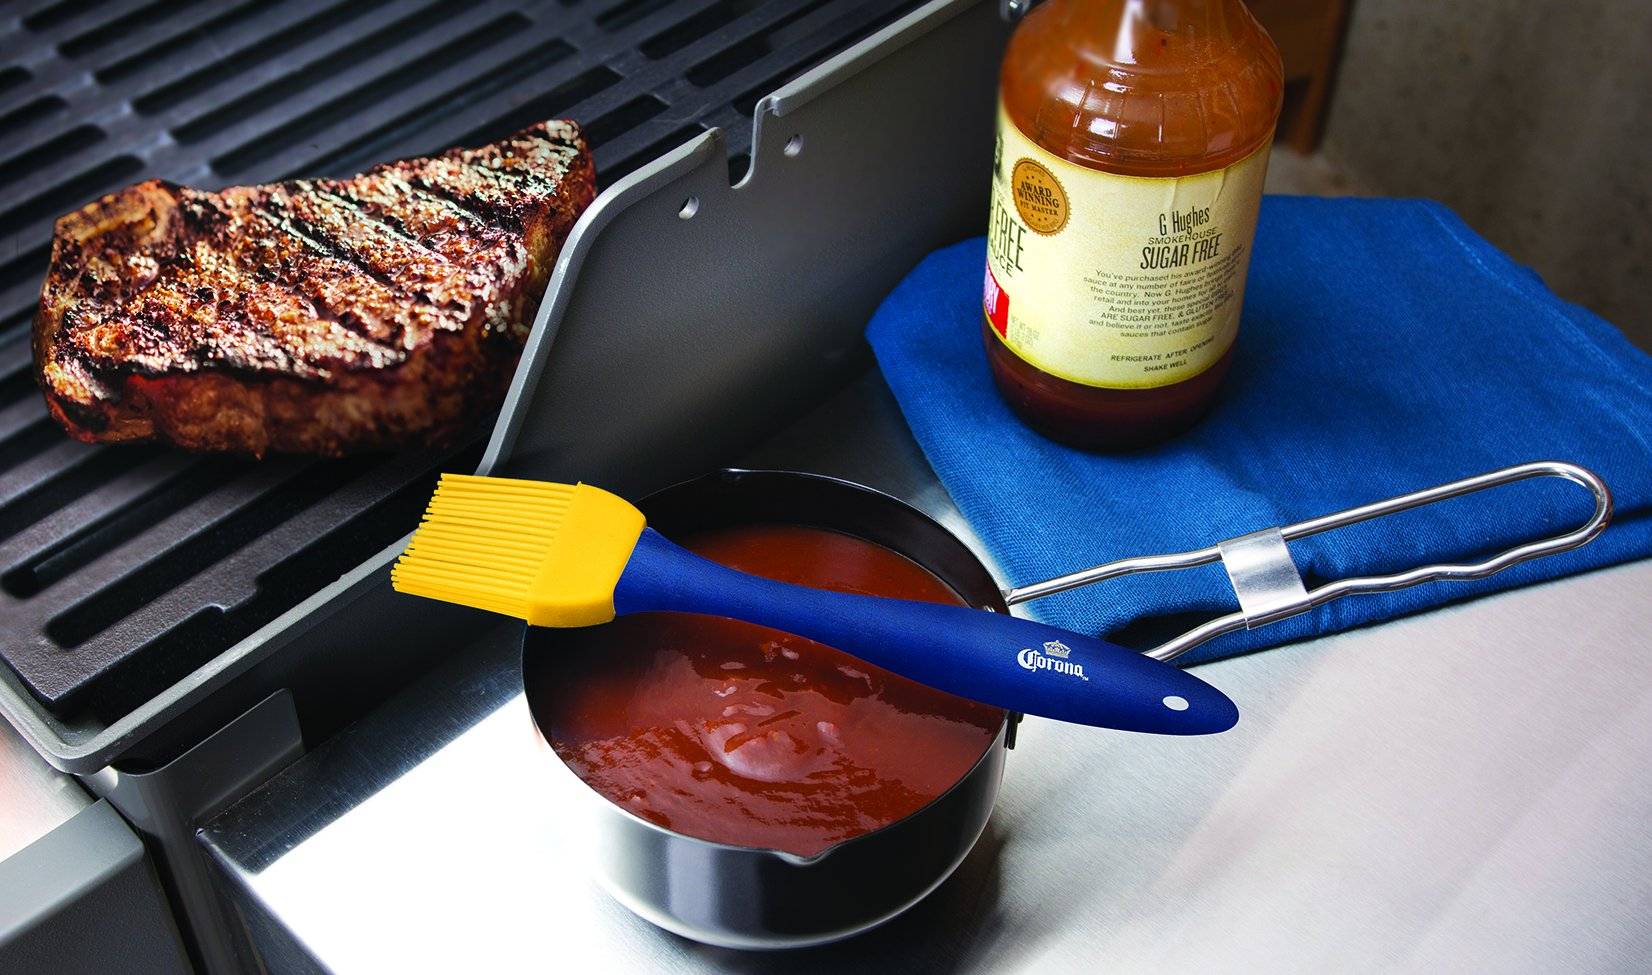 "Corona Basting Brush and Sauce Pot Set - 2 Piece BBQ Grilling Silicone Basting Brush And Steel Non-stick Sauce Pot Barbeque Accessory 2 TWO PIECE SET FOR OUTDOOR GRILLS - The premium silicone basting brush and sauce pot combo is ideal for use in the kitchen when cooking and baking or for outdoors when grilling and basting meats! Perfect for beef, chicken, seafood, vegetables and more. Brush measures 7.75"" in length. BPA FREE FOOD GRADE BRUSH - Baste in style with the cookout brushes ergonomic comfort grip handles. Use for for toast, jam, honey, pastry, condensed milk, breakfast, birthday party, picnics, outdoor BBQ brush for food. Durable heat resistant silicone bristles up to 400 degrees F. SAUCE POT FOR GLAZES AND MORE - The nonstick coated sauce pot is perfect for different sauces while cooking. DO NOT HEAT POT. Hand Wash Only. Sauce pot measures 4.5"" in diameter and is 2.5"" deep. Holds 18 ounces of liquid."